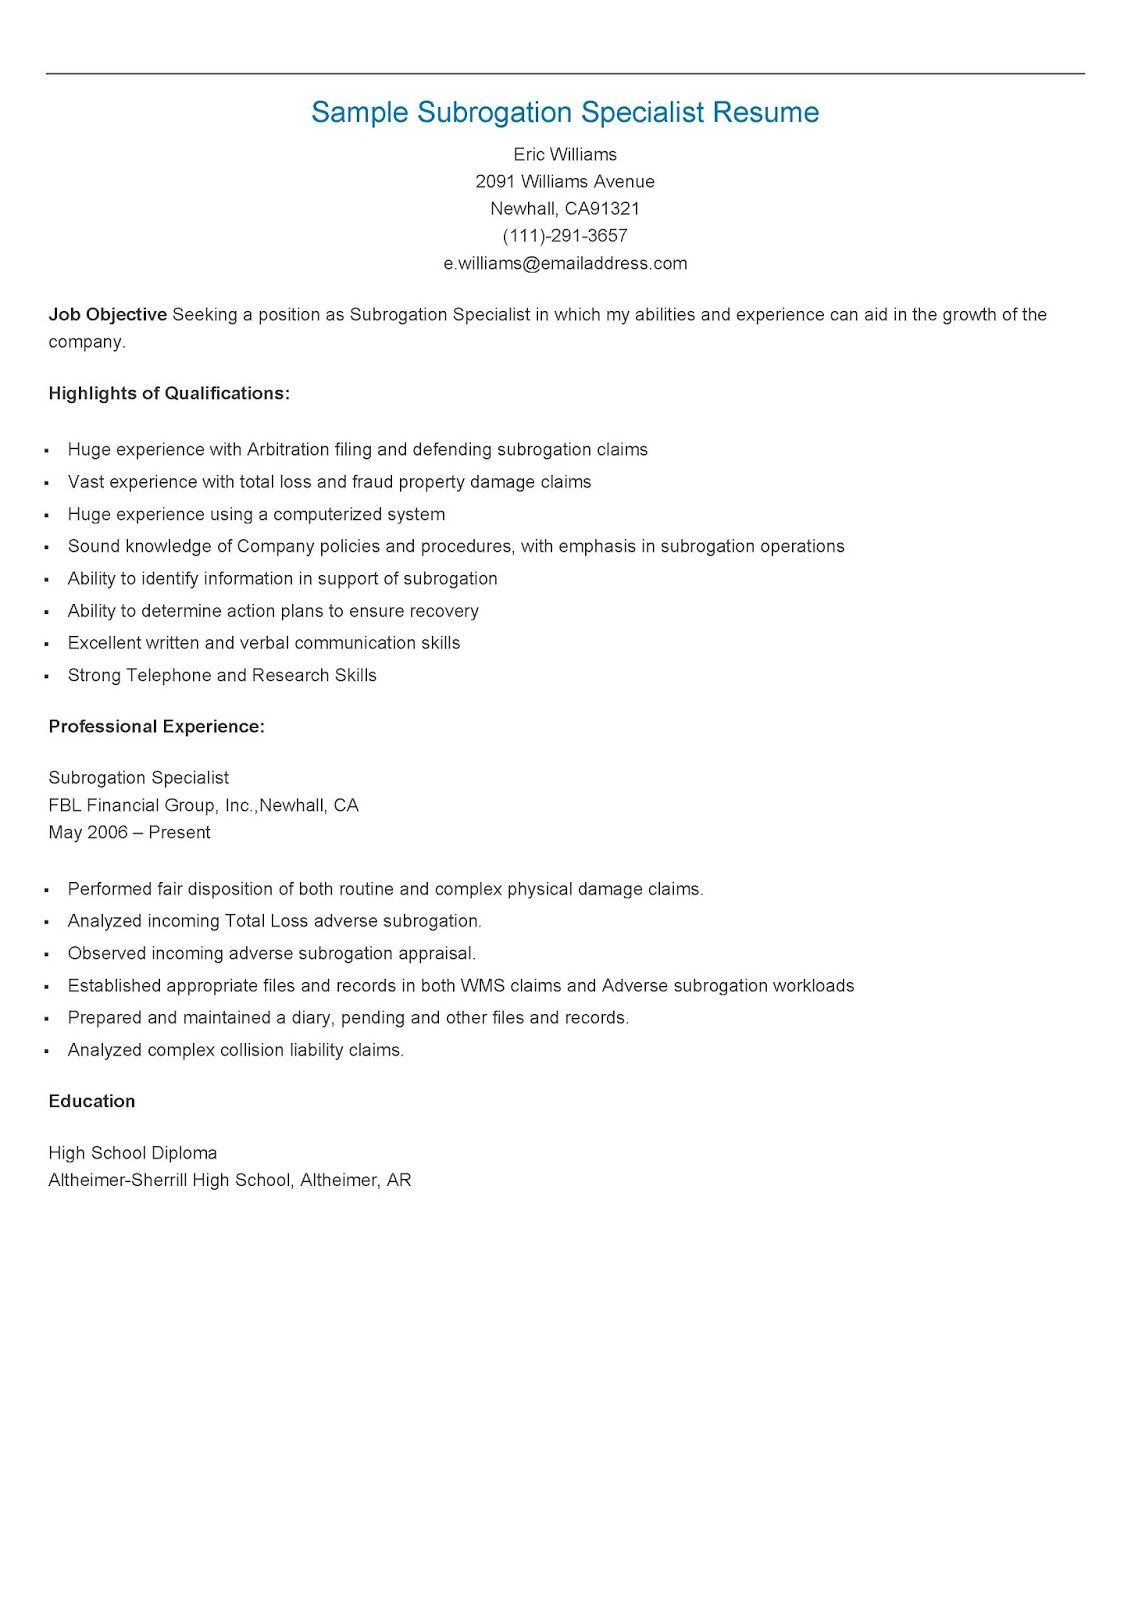 High Quality Sample Subrogation Specialist Resume